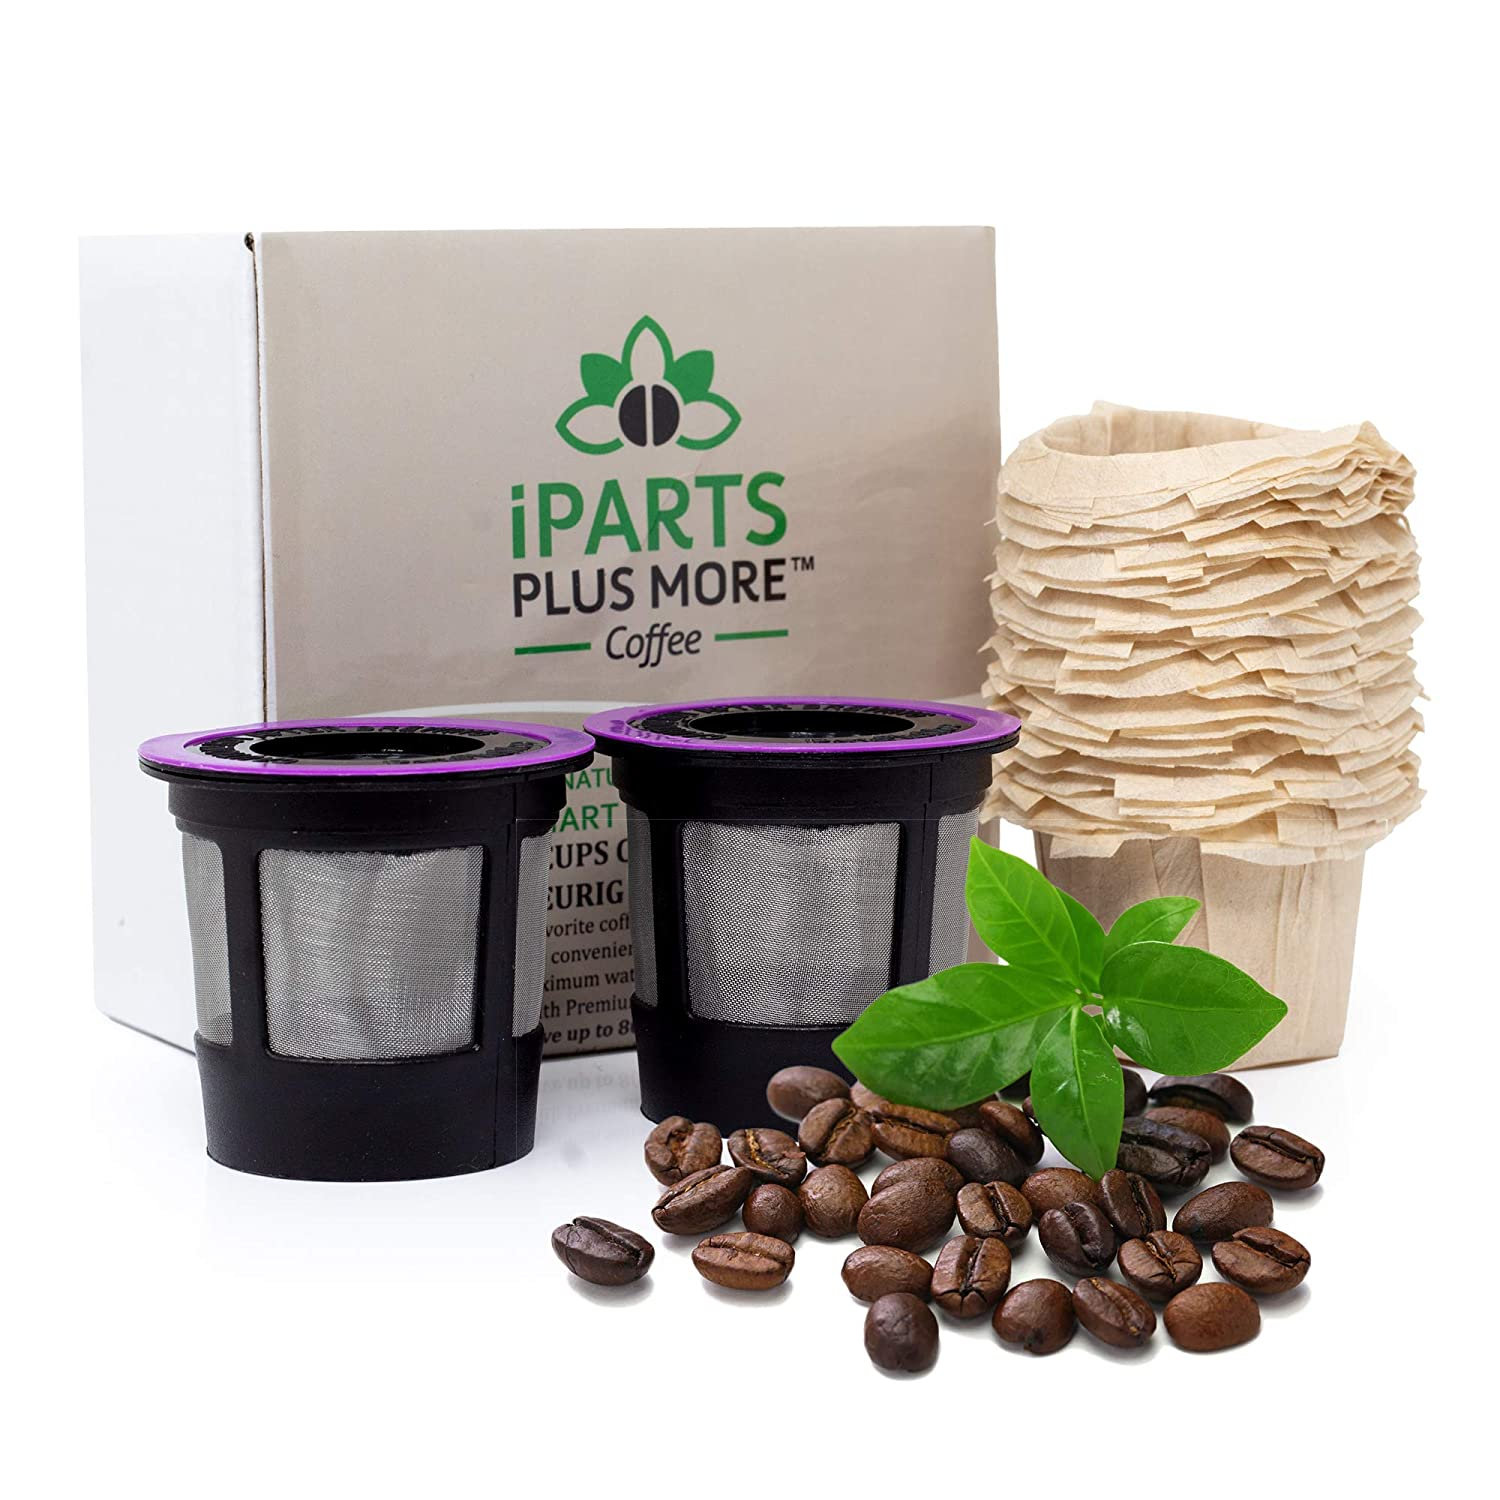 iPartsPlusMore Reusable K-Cup Filter Pods with Compatible Natural Paper Coffee Filter Inserts (2 pack pods + 25 ct filters)